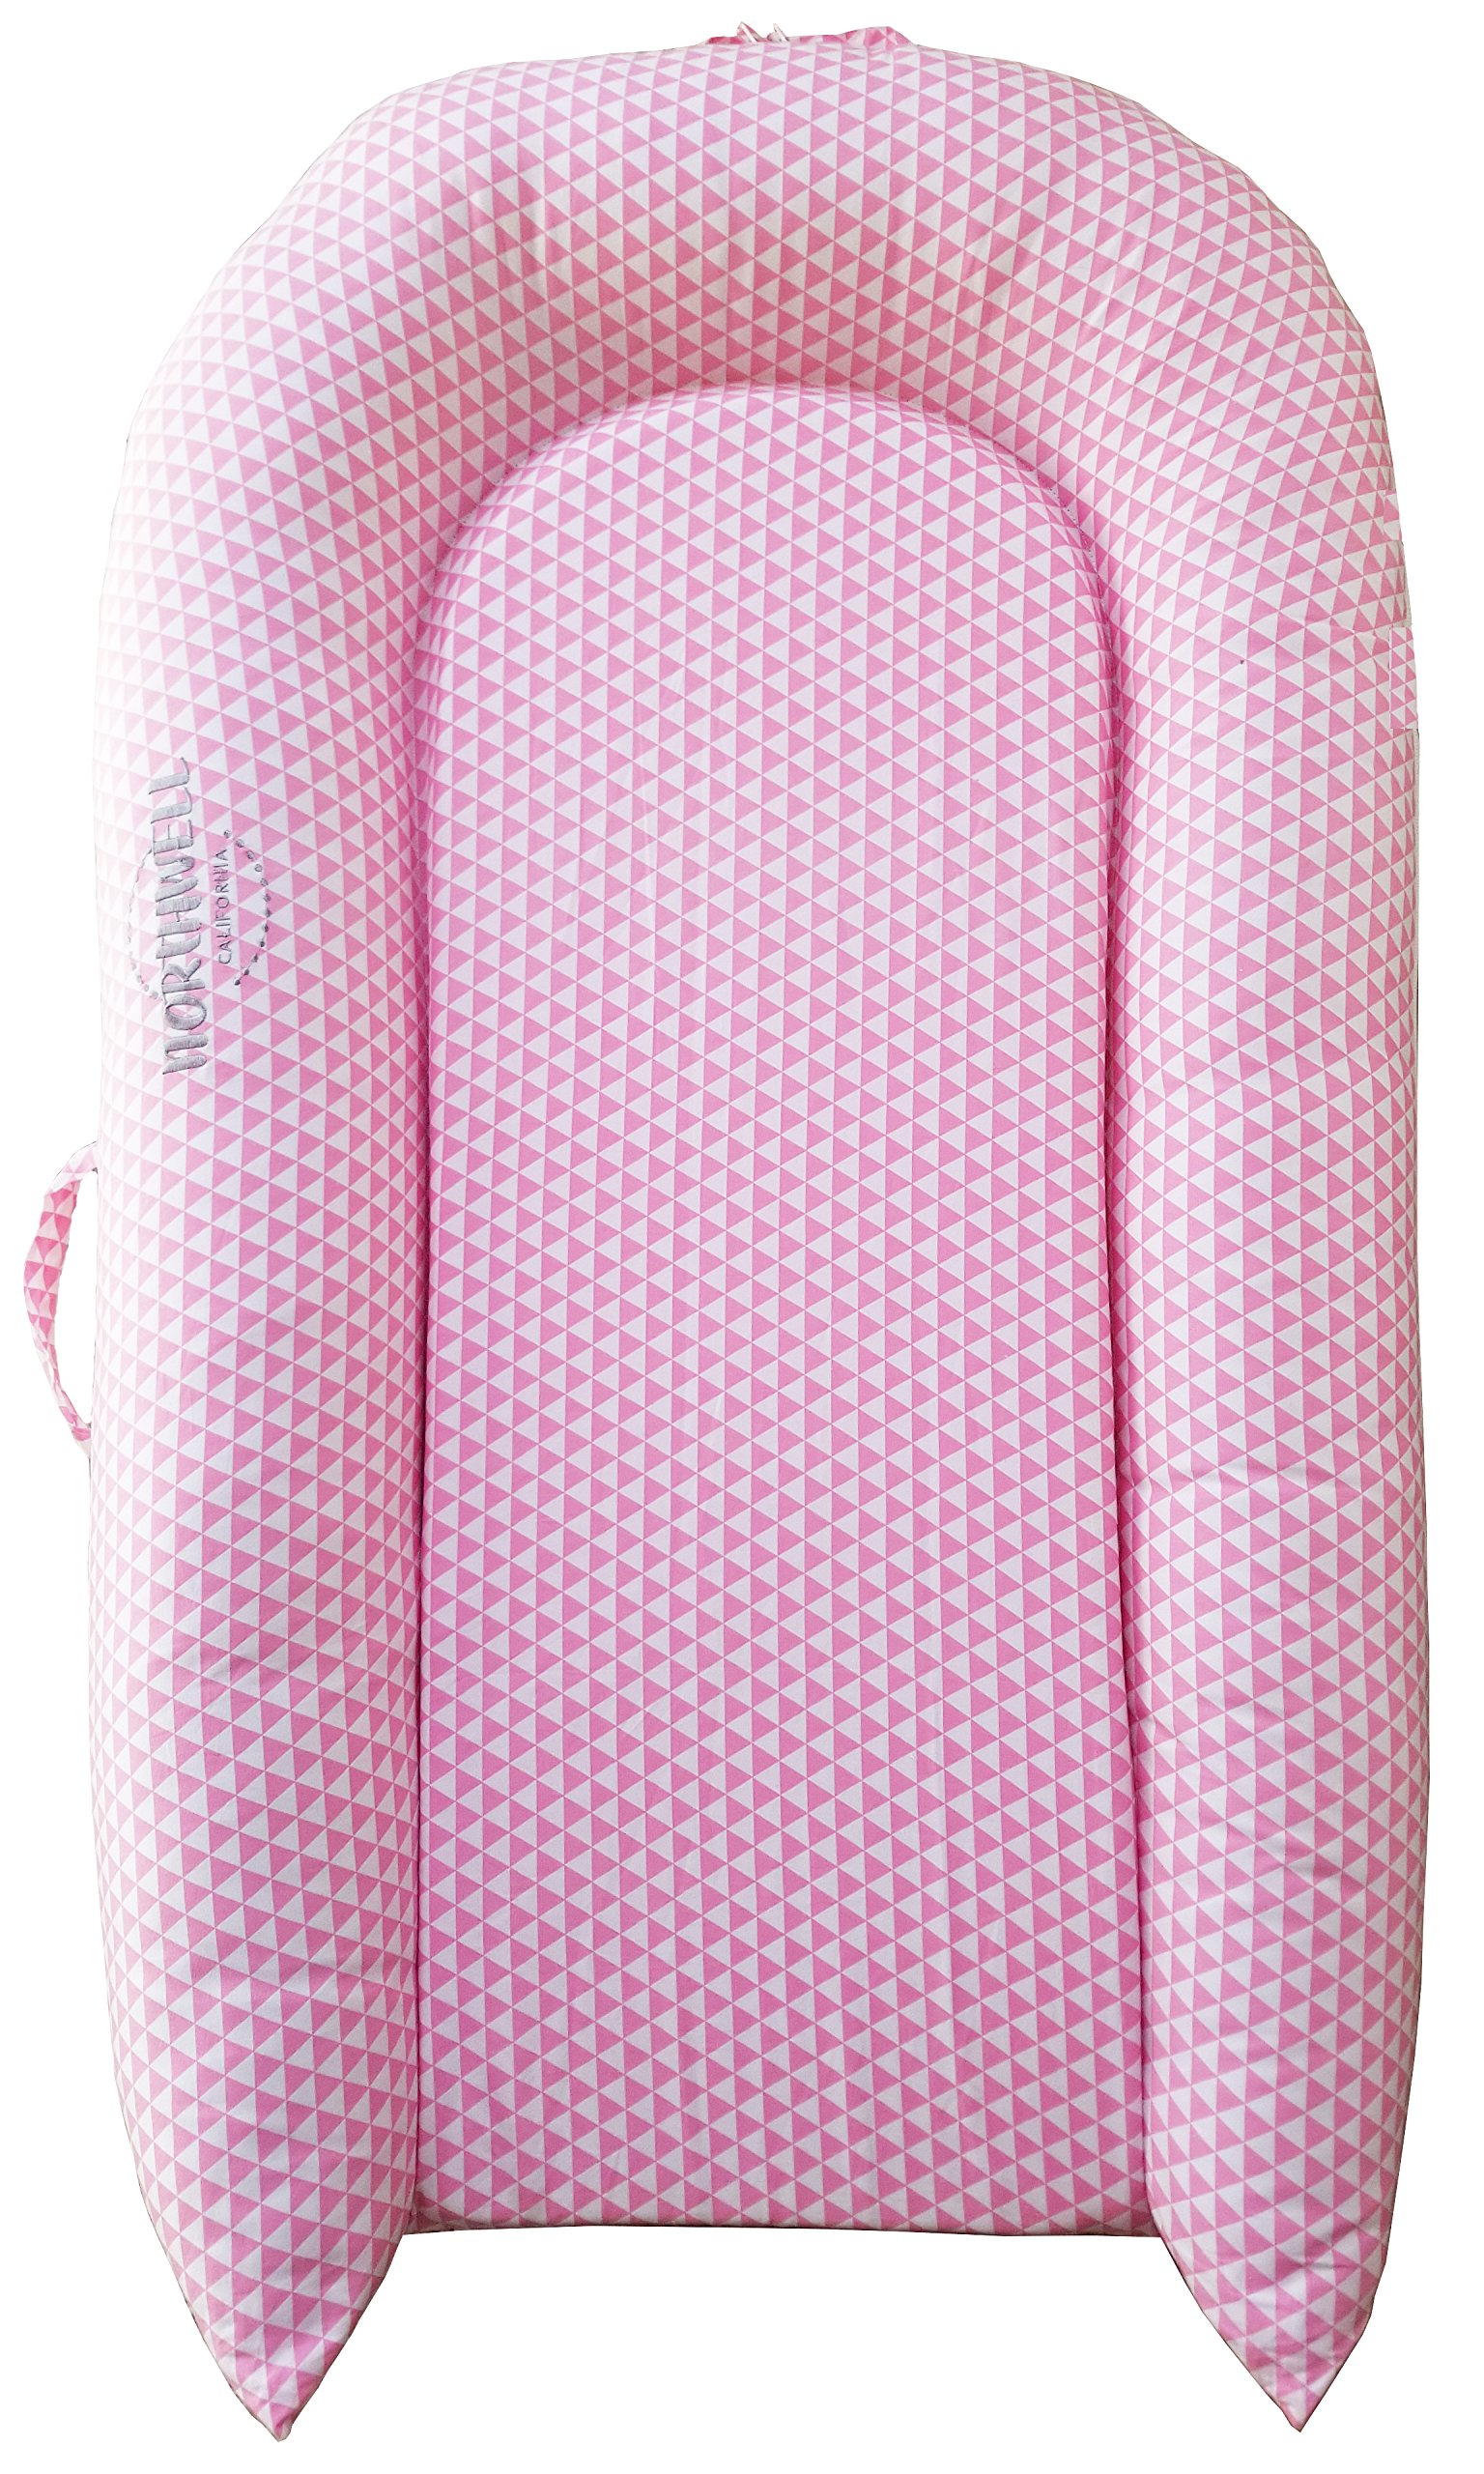 Northwell Toddler Lounger - Perfect for Co-Sleeping, Cuddling, Toddler Nest, Portable Toddler Bed & Crib to Bed Transition - Breathable, Hypoallergenic, Non-Toxic, for 9-36 Months (Pink Lemonade)